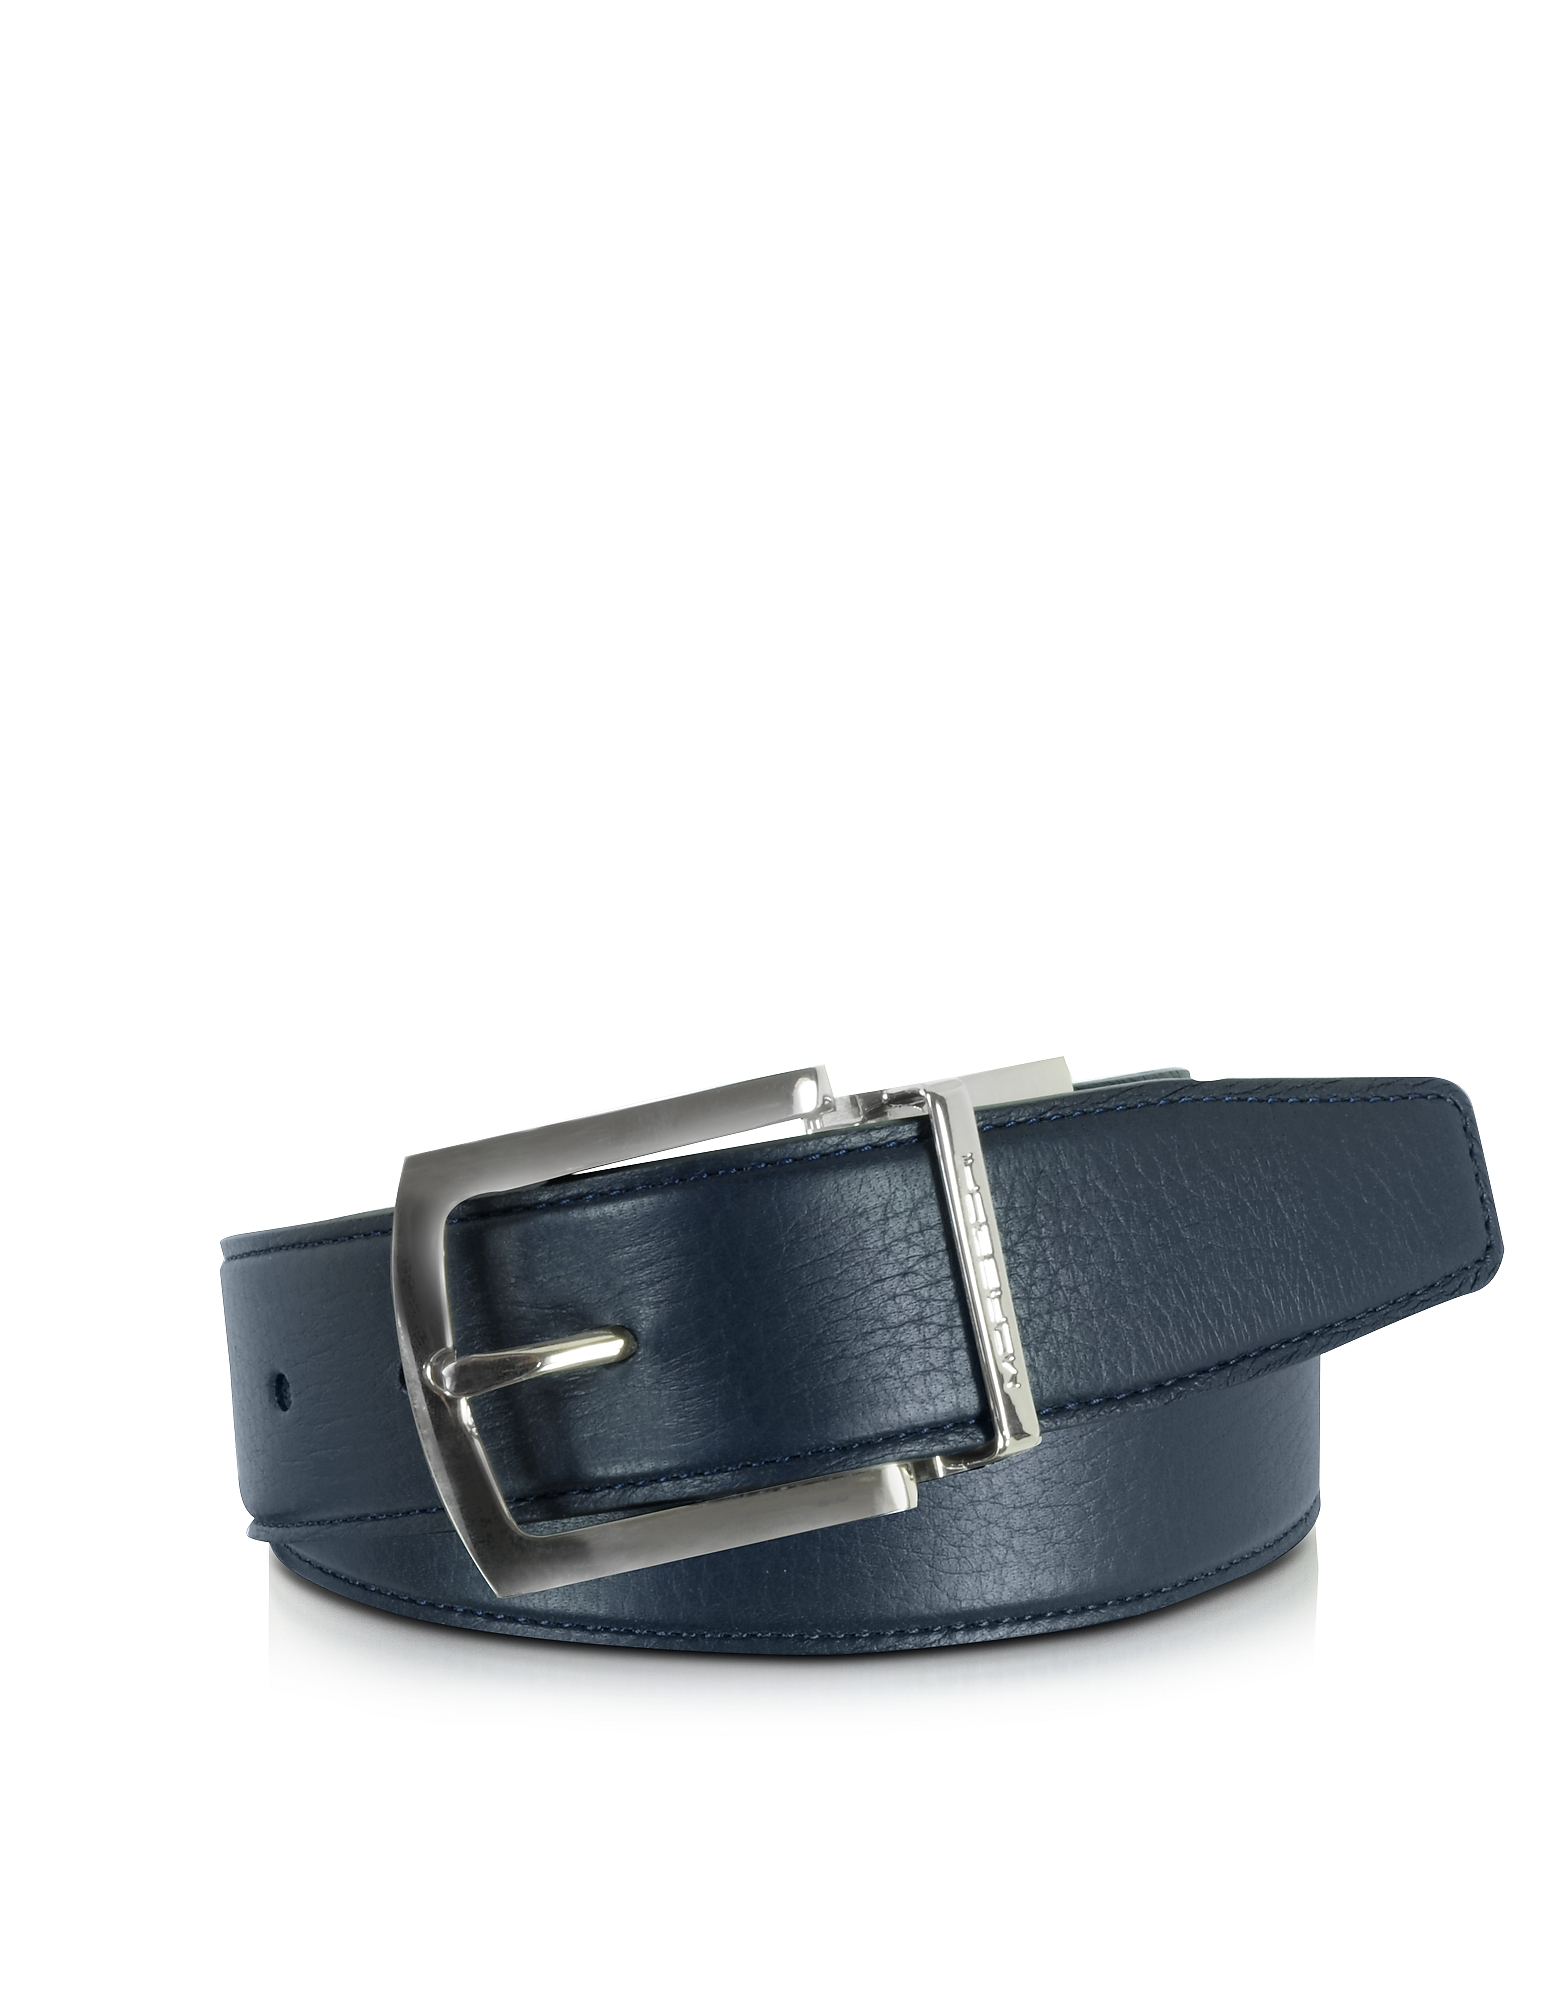 Moreschi Men's Belts, Orlando Navy Blue/Blue Reversible Leather Belt